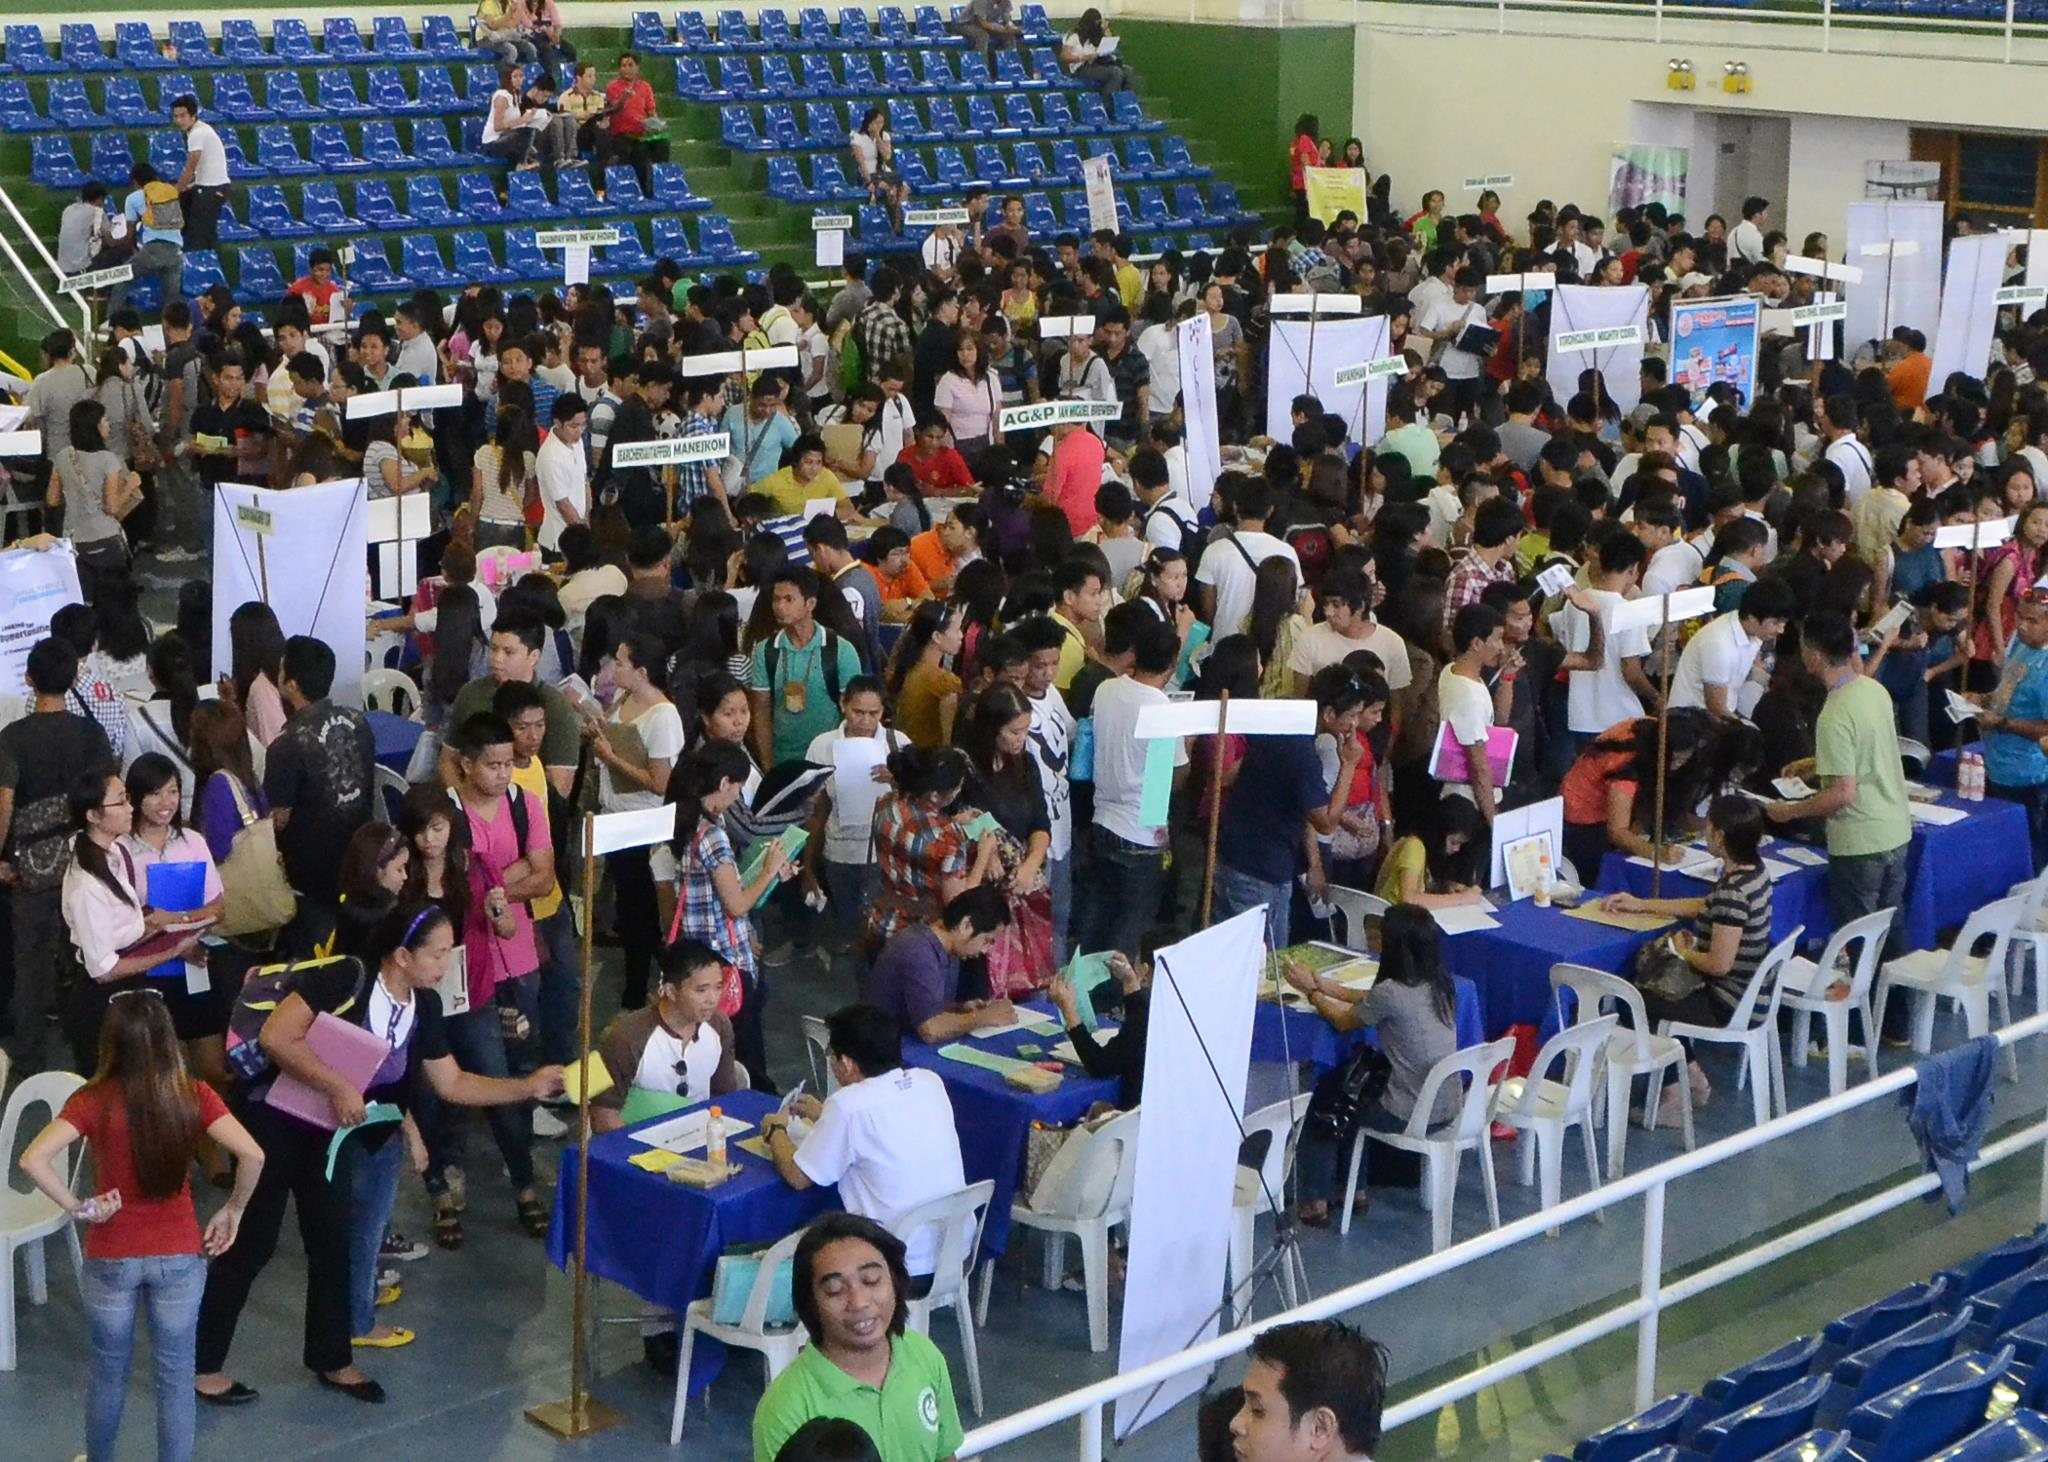 DOLE offers 70,000 jobs here and abroad in nationwide Independence Day job fair